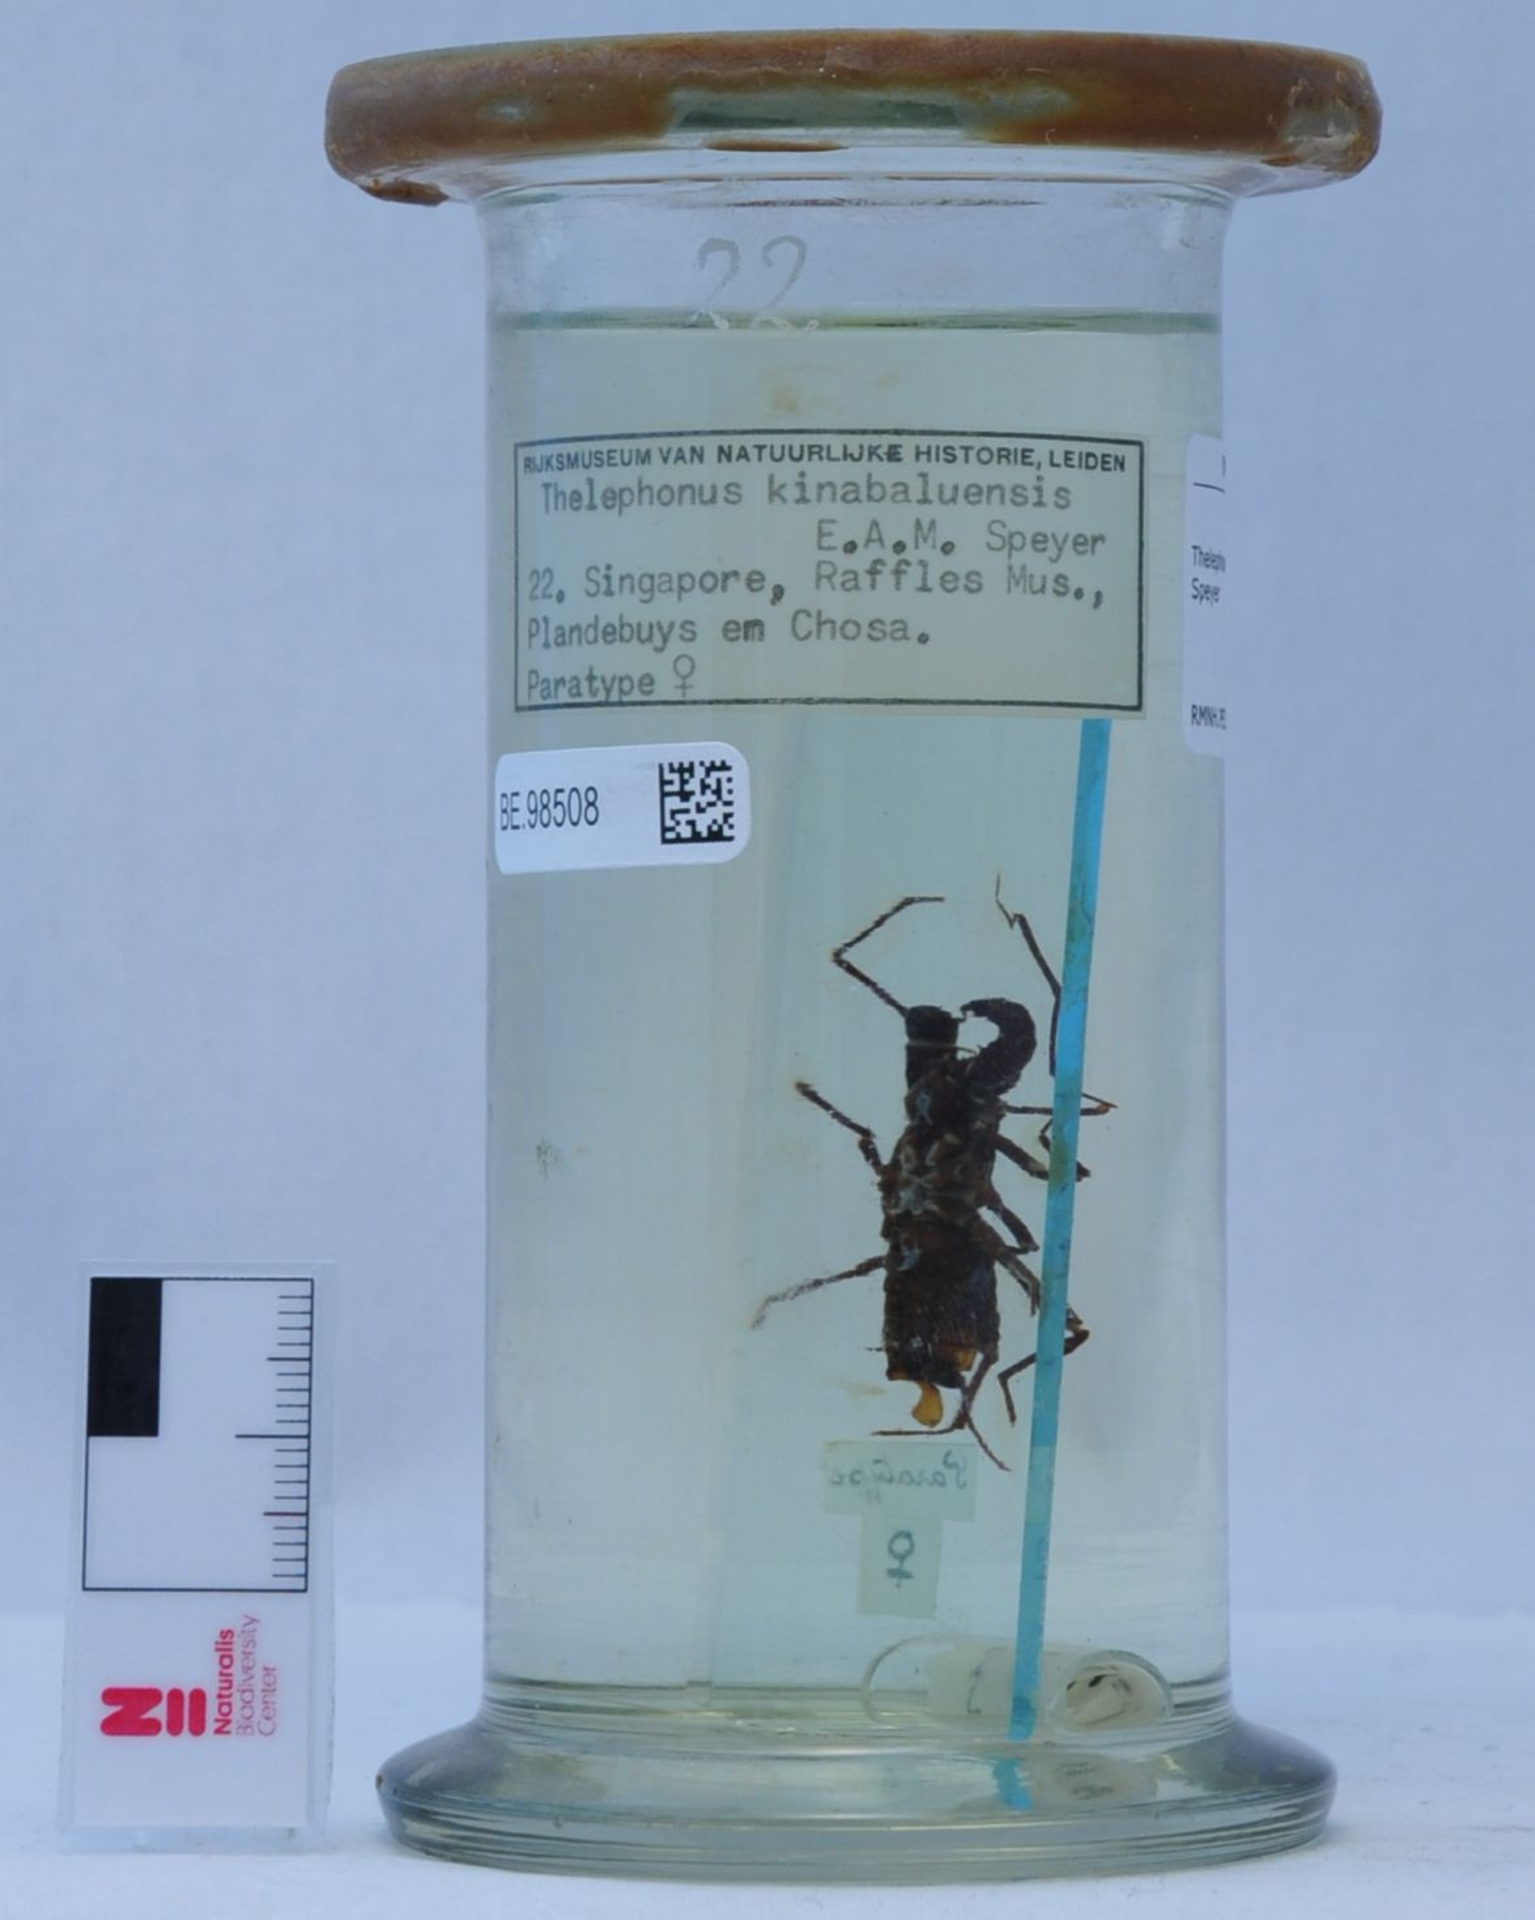 RMNH.PED.22 | Thelephones kinabaluensis E.A.M. Speyer